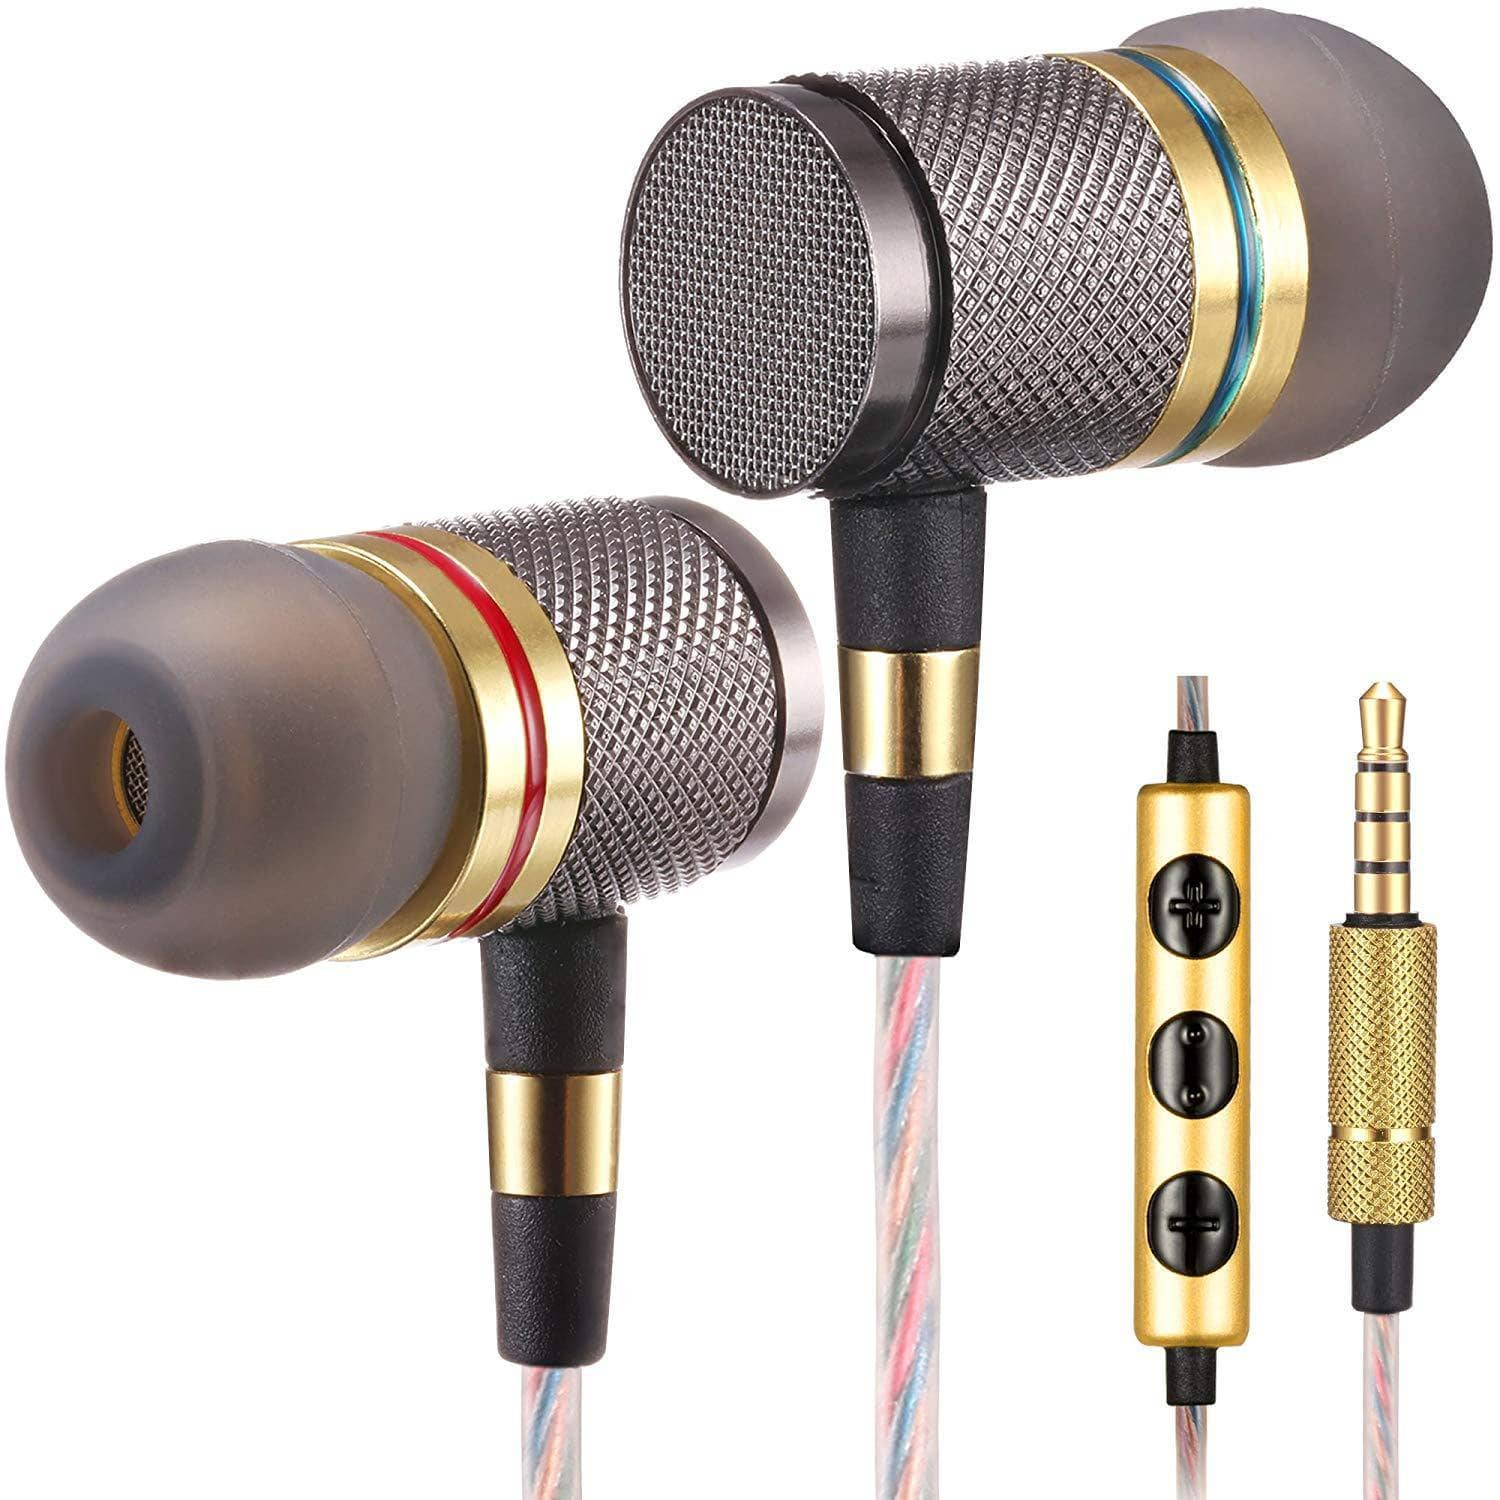 betron ysm1000 headphones earbuds high definition in ear noise